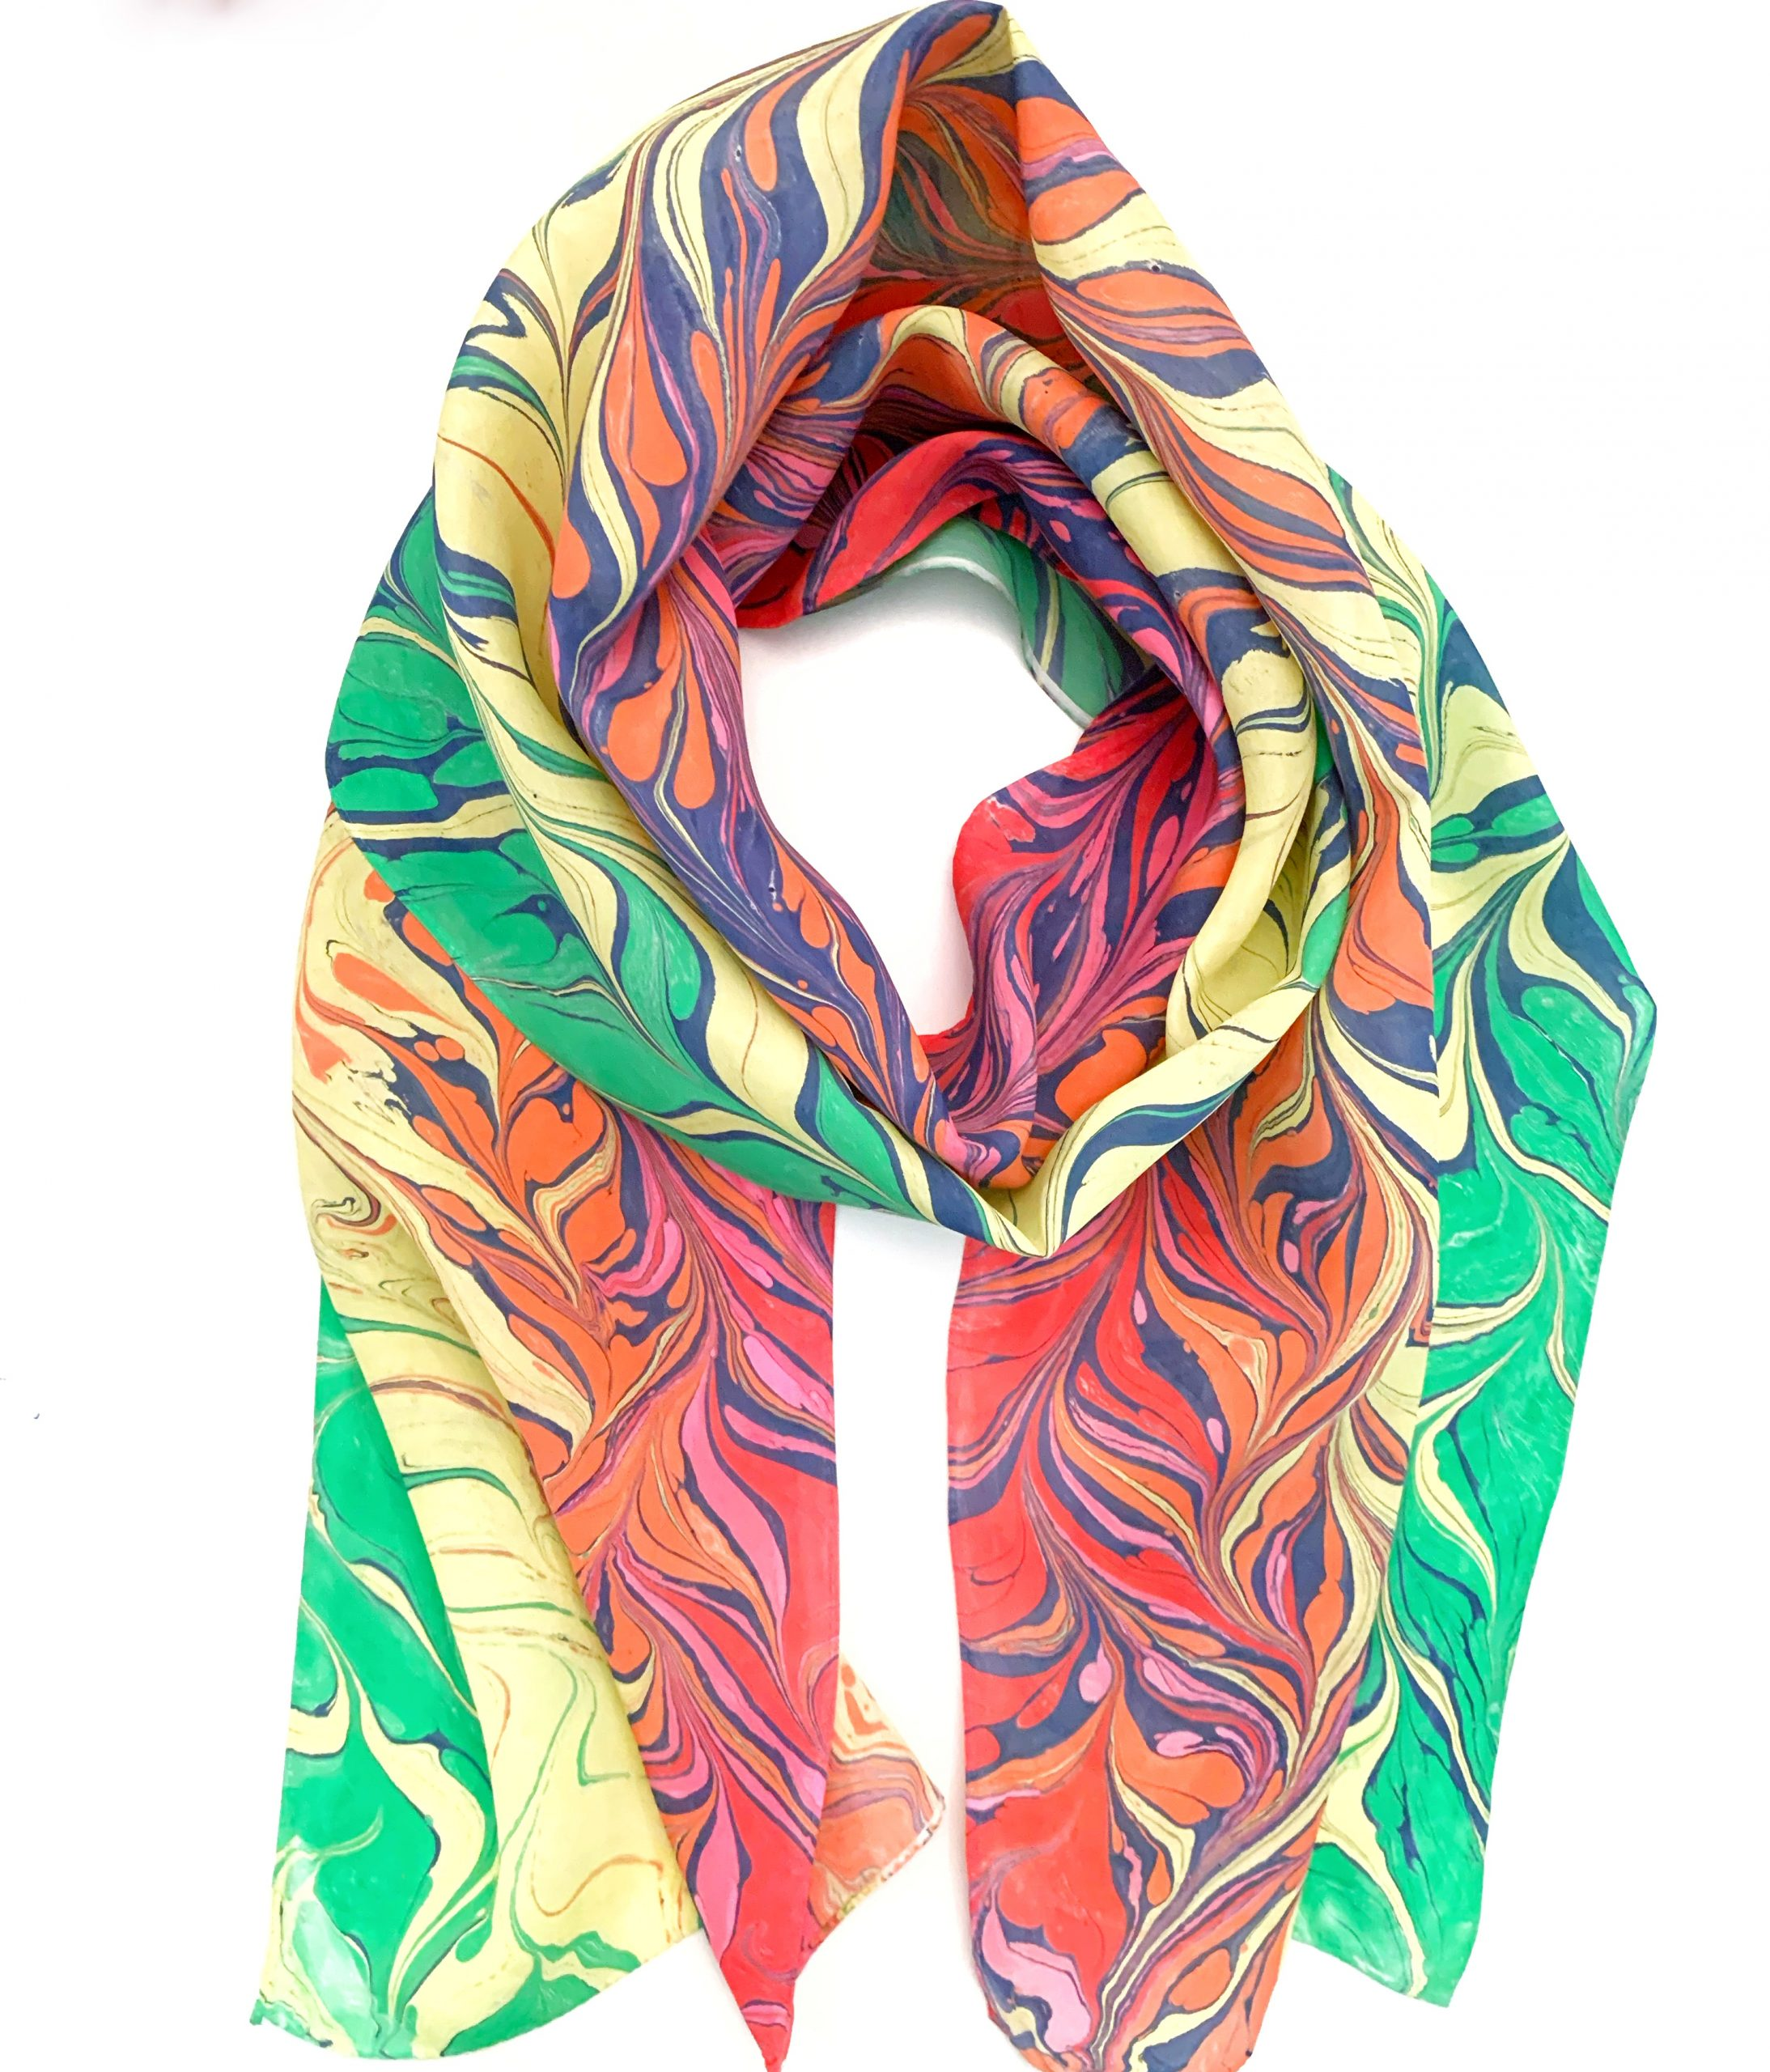 water marbled rainbow scarf